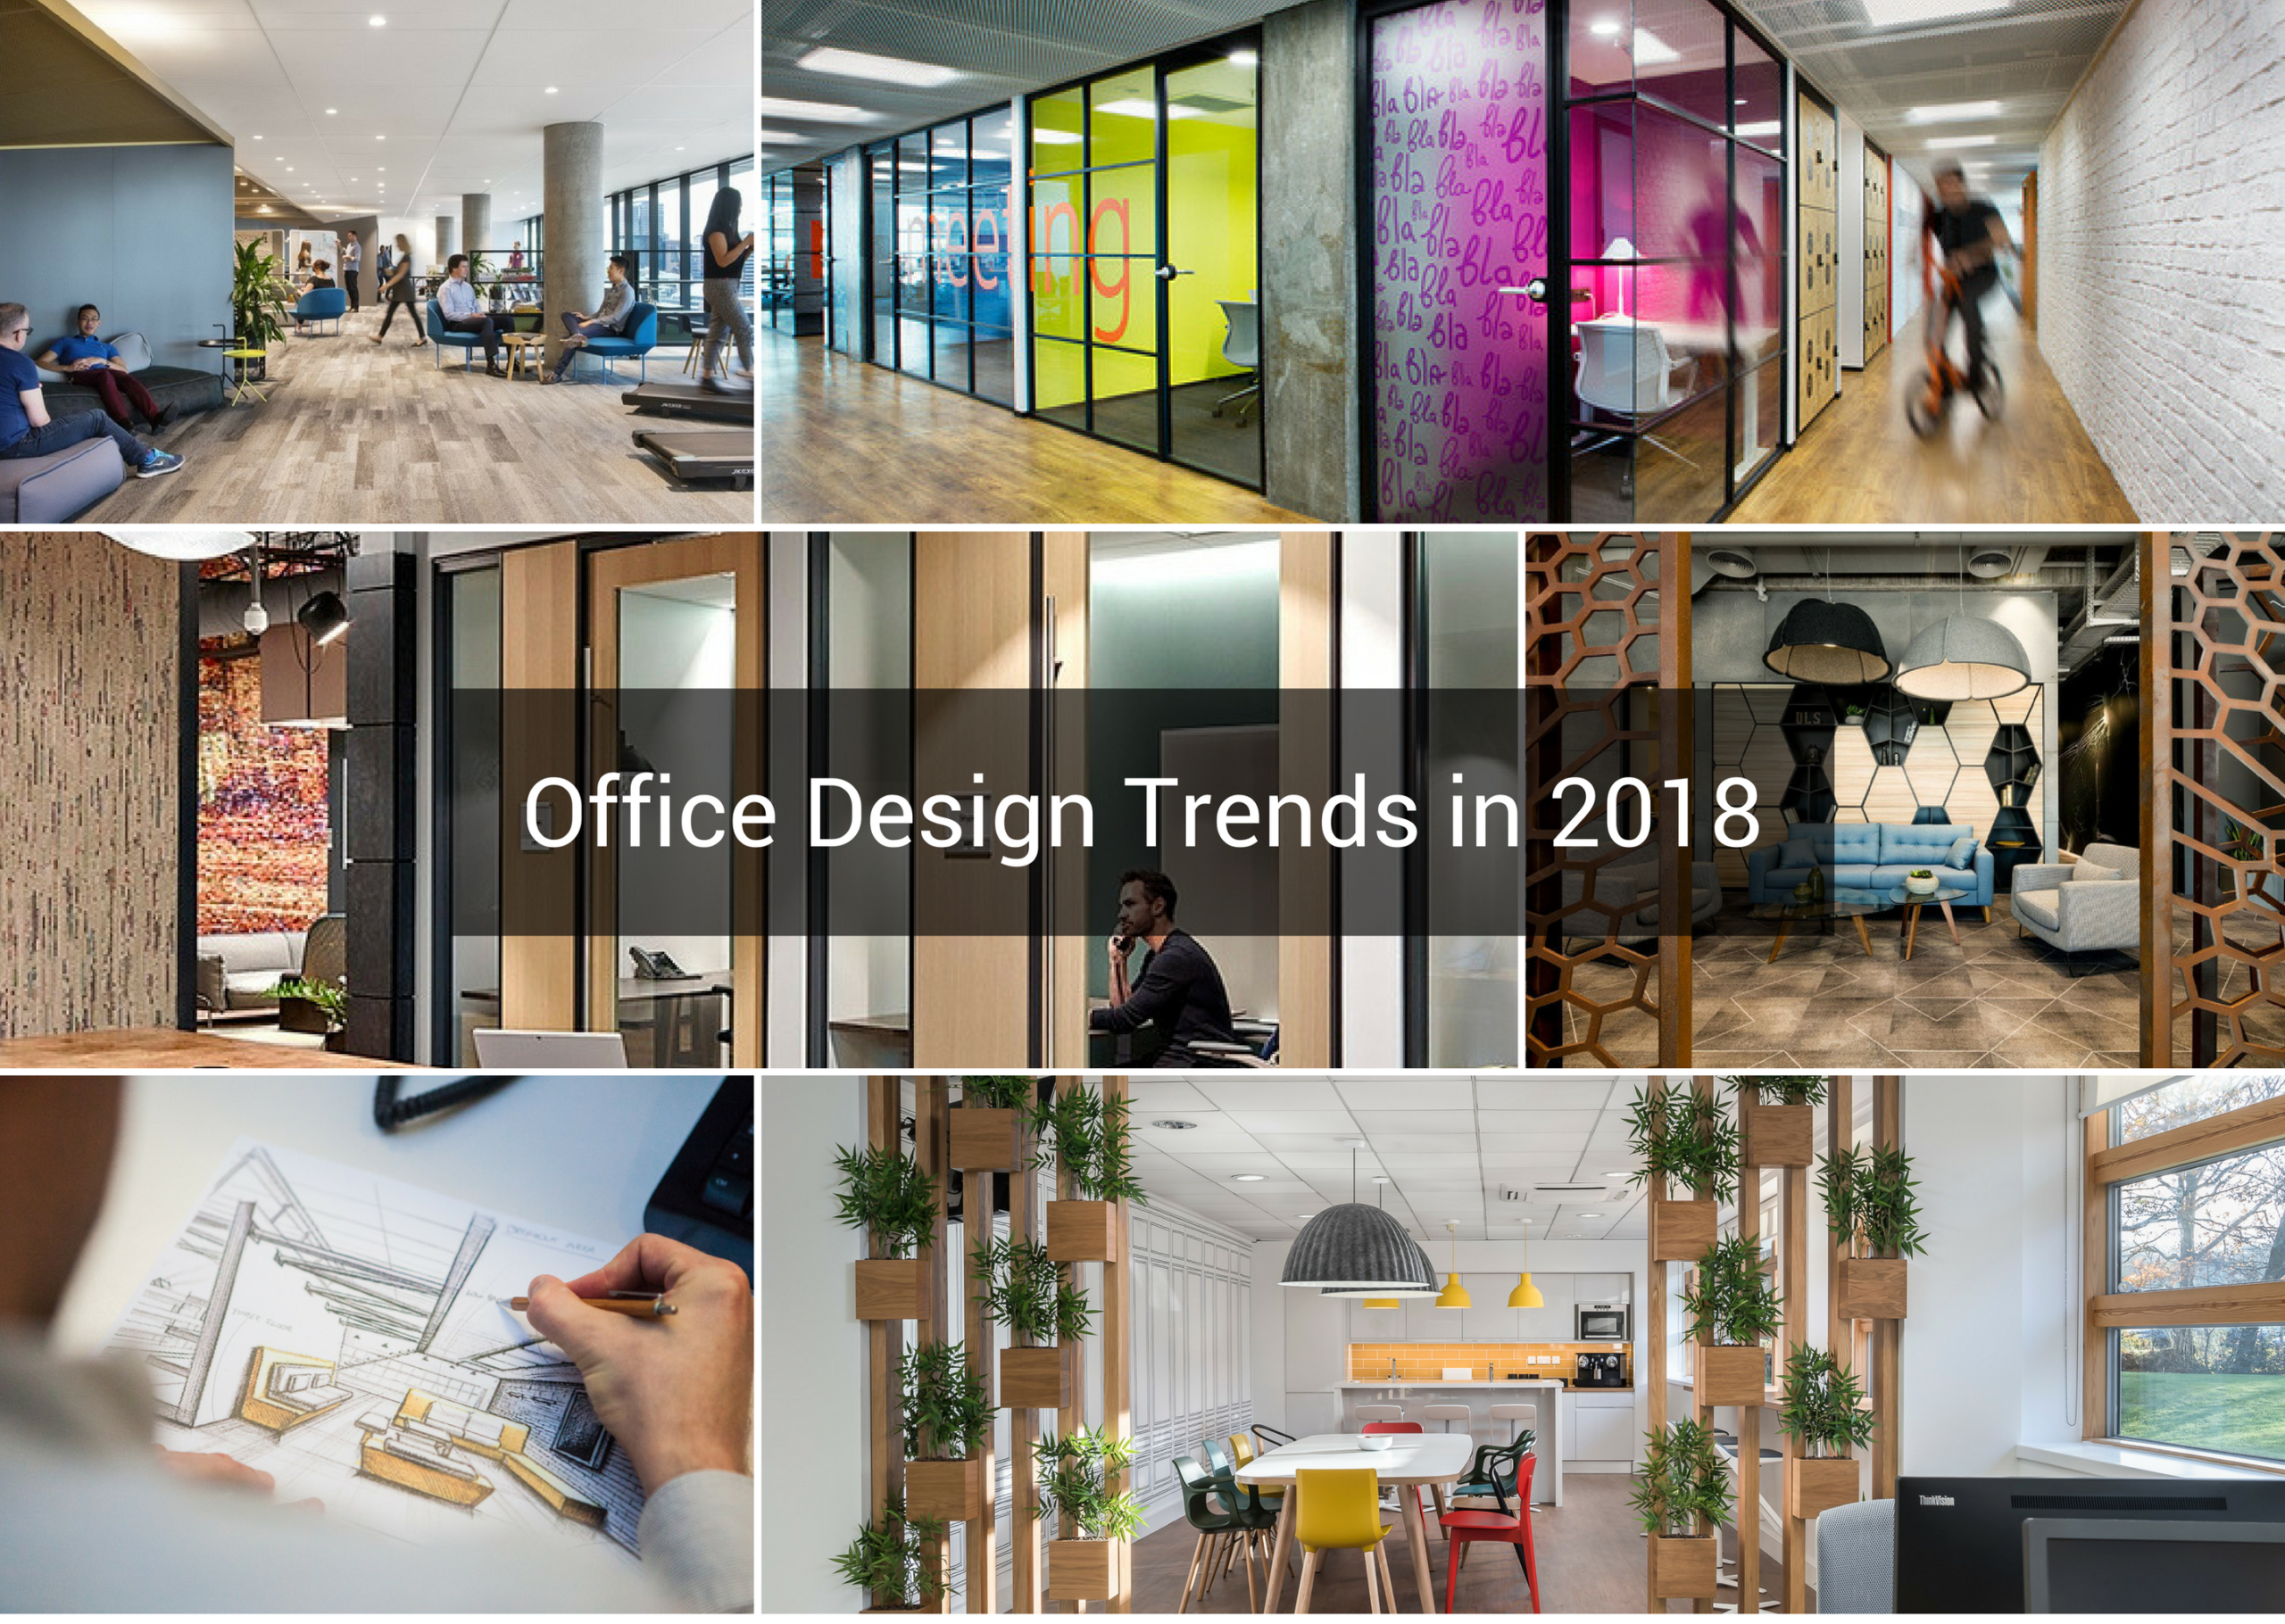 Office design trends to watch out for in 2018 k2 space for Office design guidelines uk